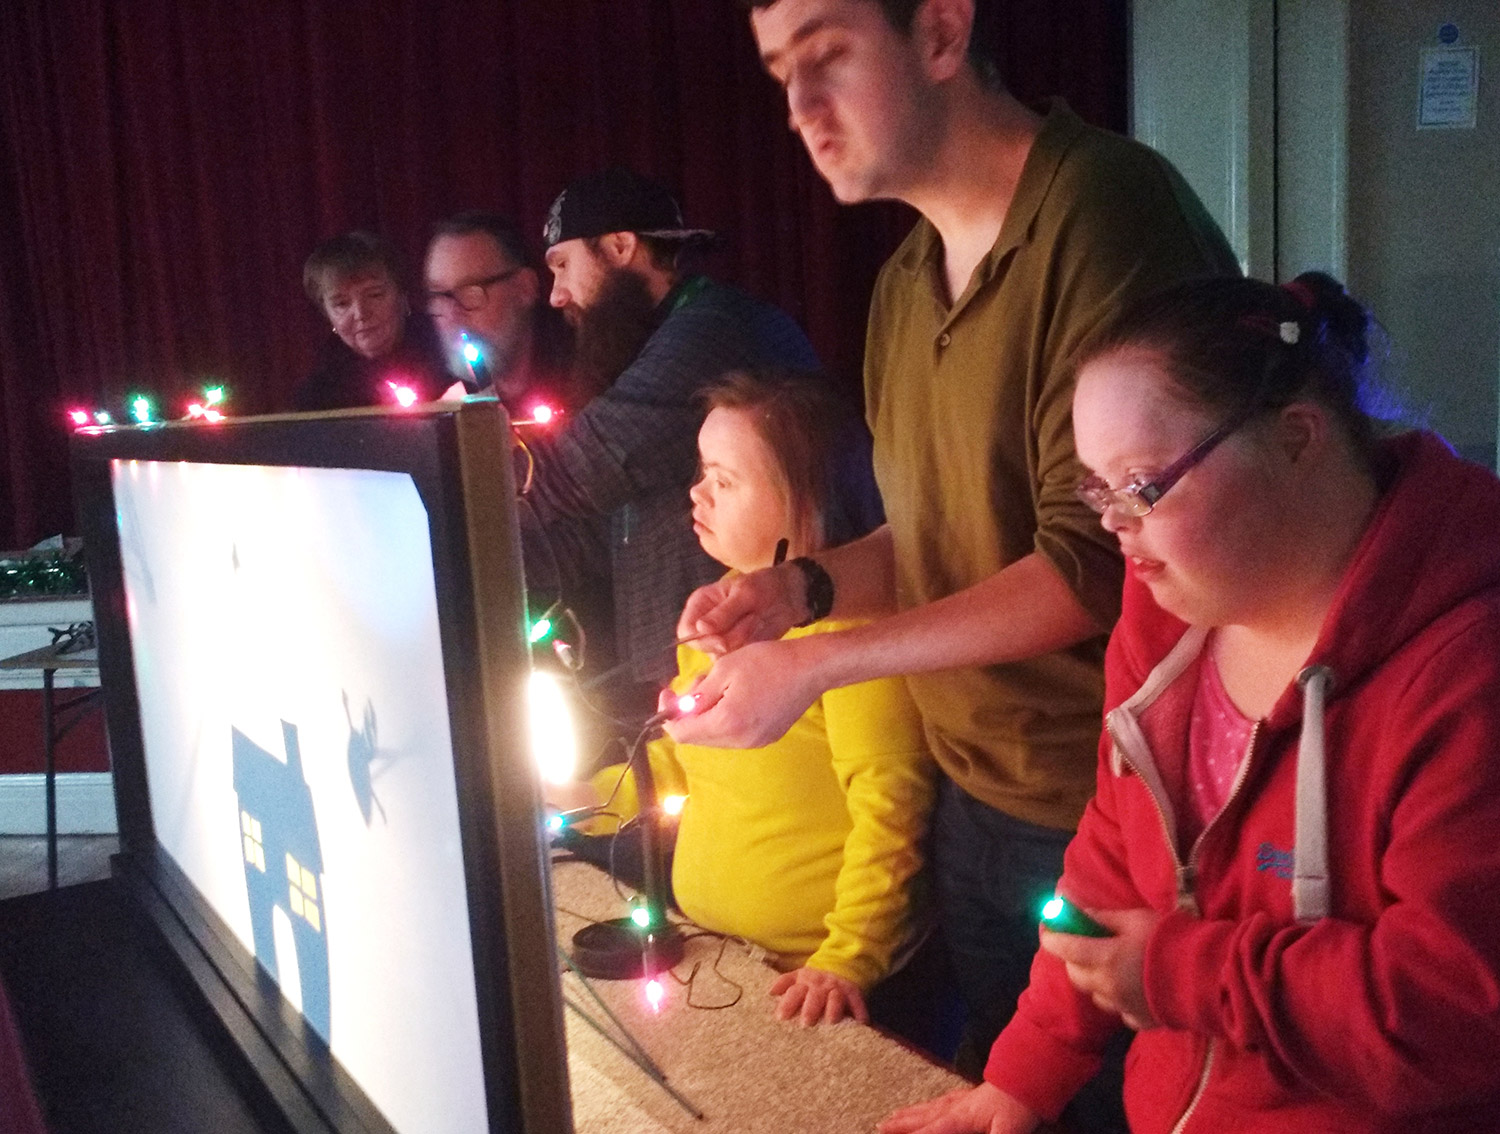 All ages entranced by shadow puppetry